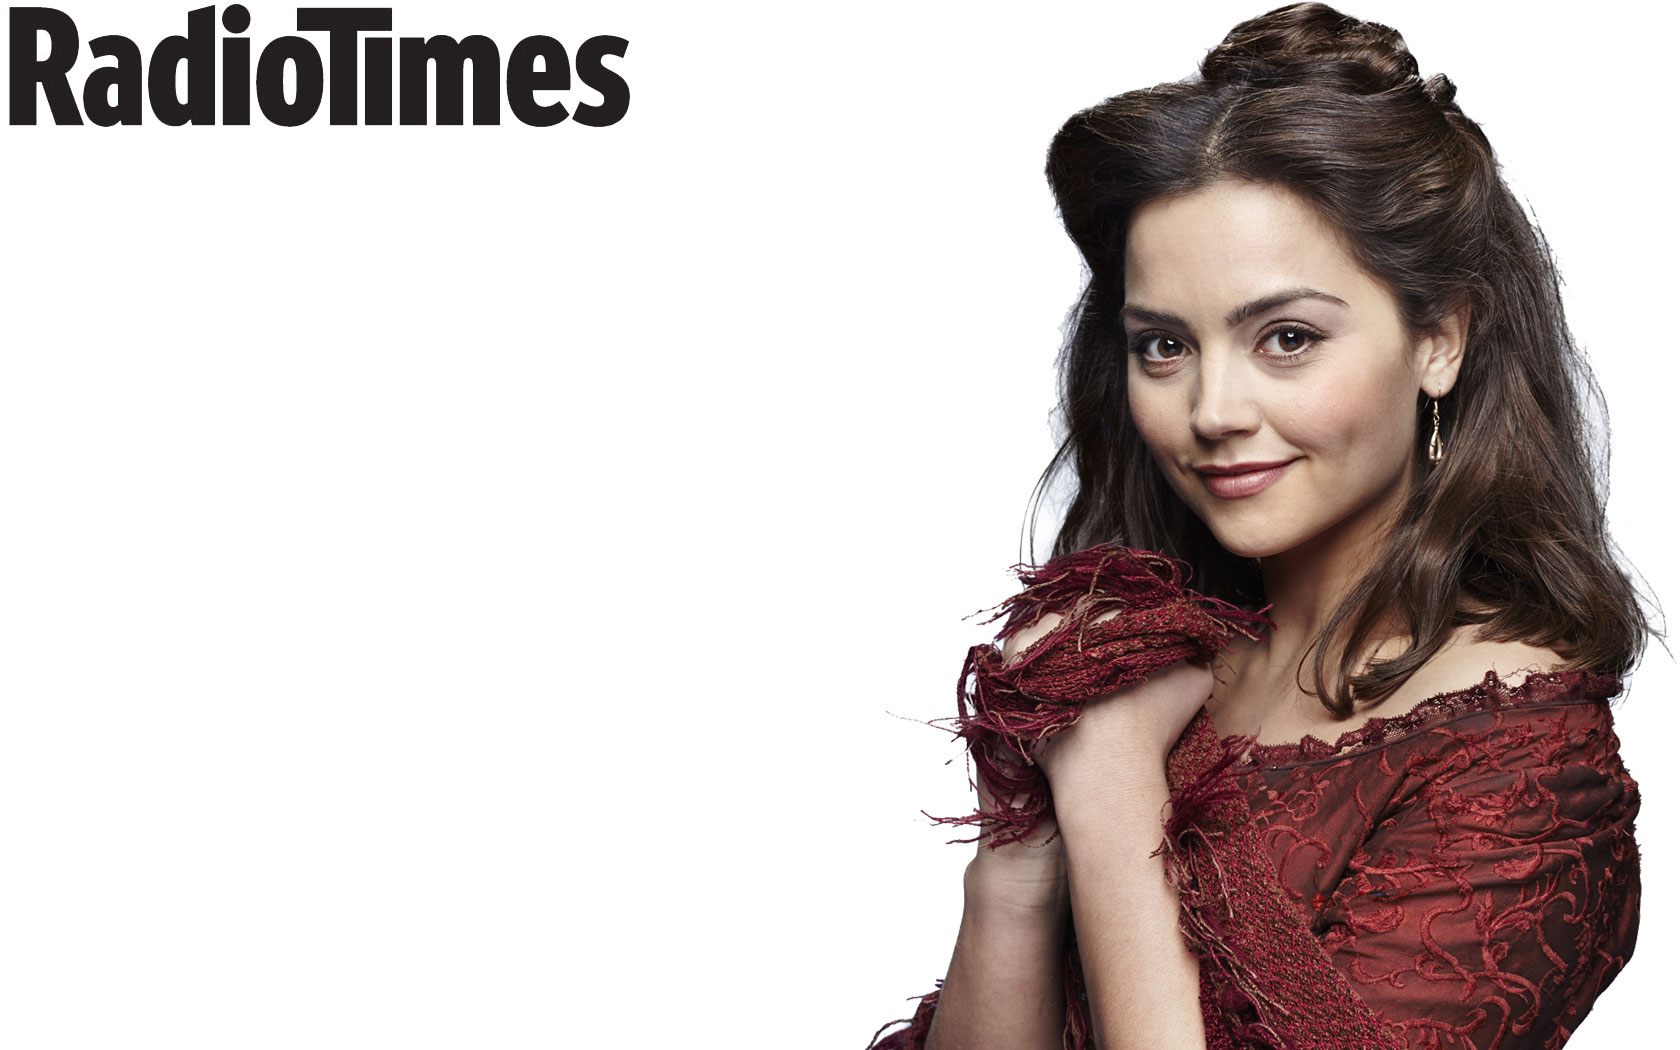 1680x1050 - Jenna-Louise Coleman Wallpapers 3